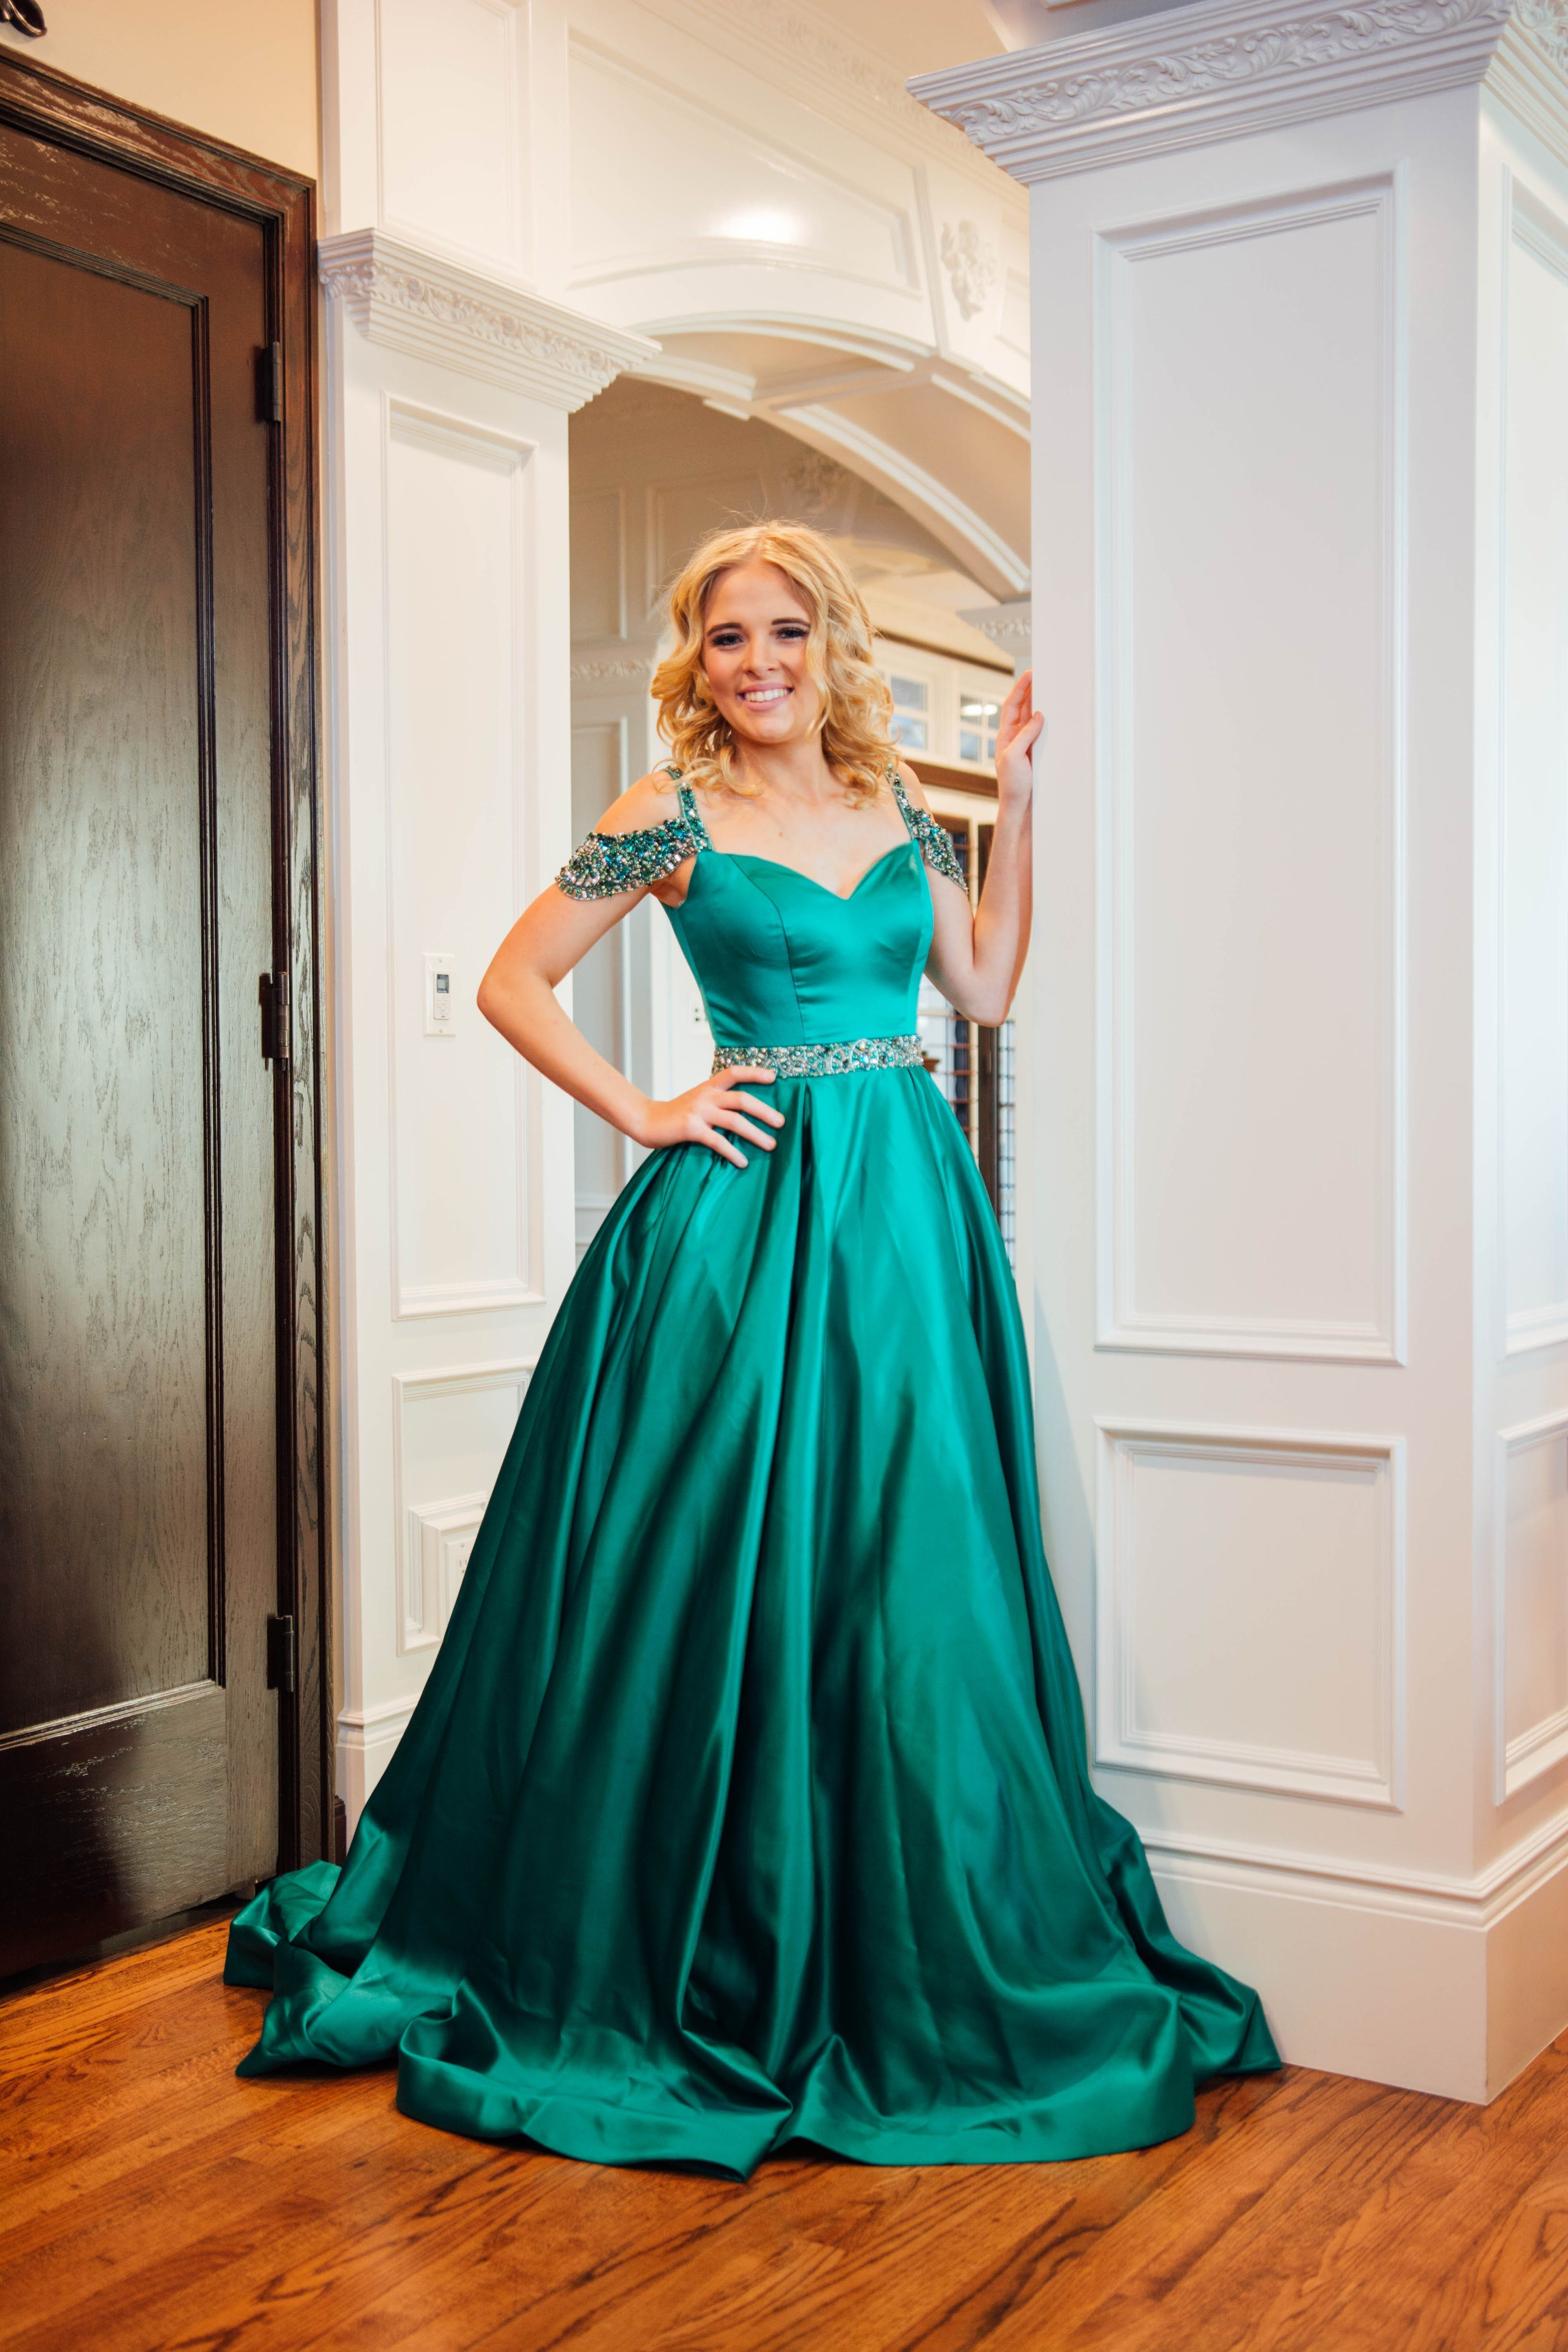 e916dc37251f Sherri Hill Green Ballgown Satin with off the shoulder beaded details  Ypsilon Dresses Pageant Prom Evening Wear Special Occasion Homecoming  Sweethearts ...